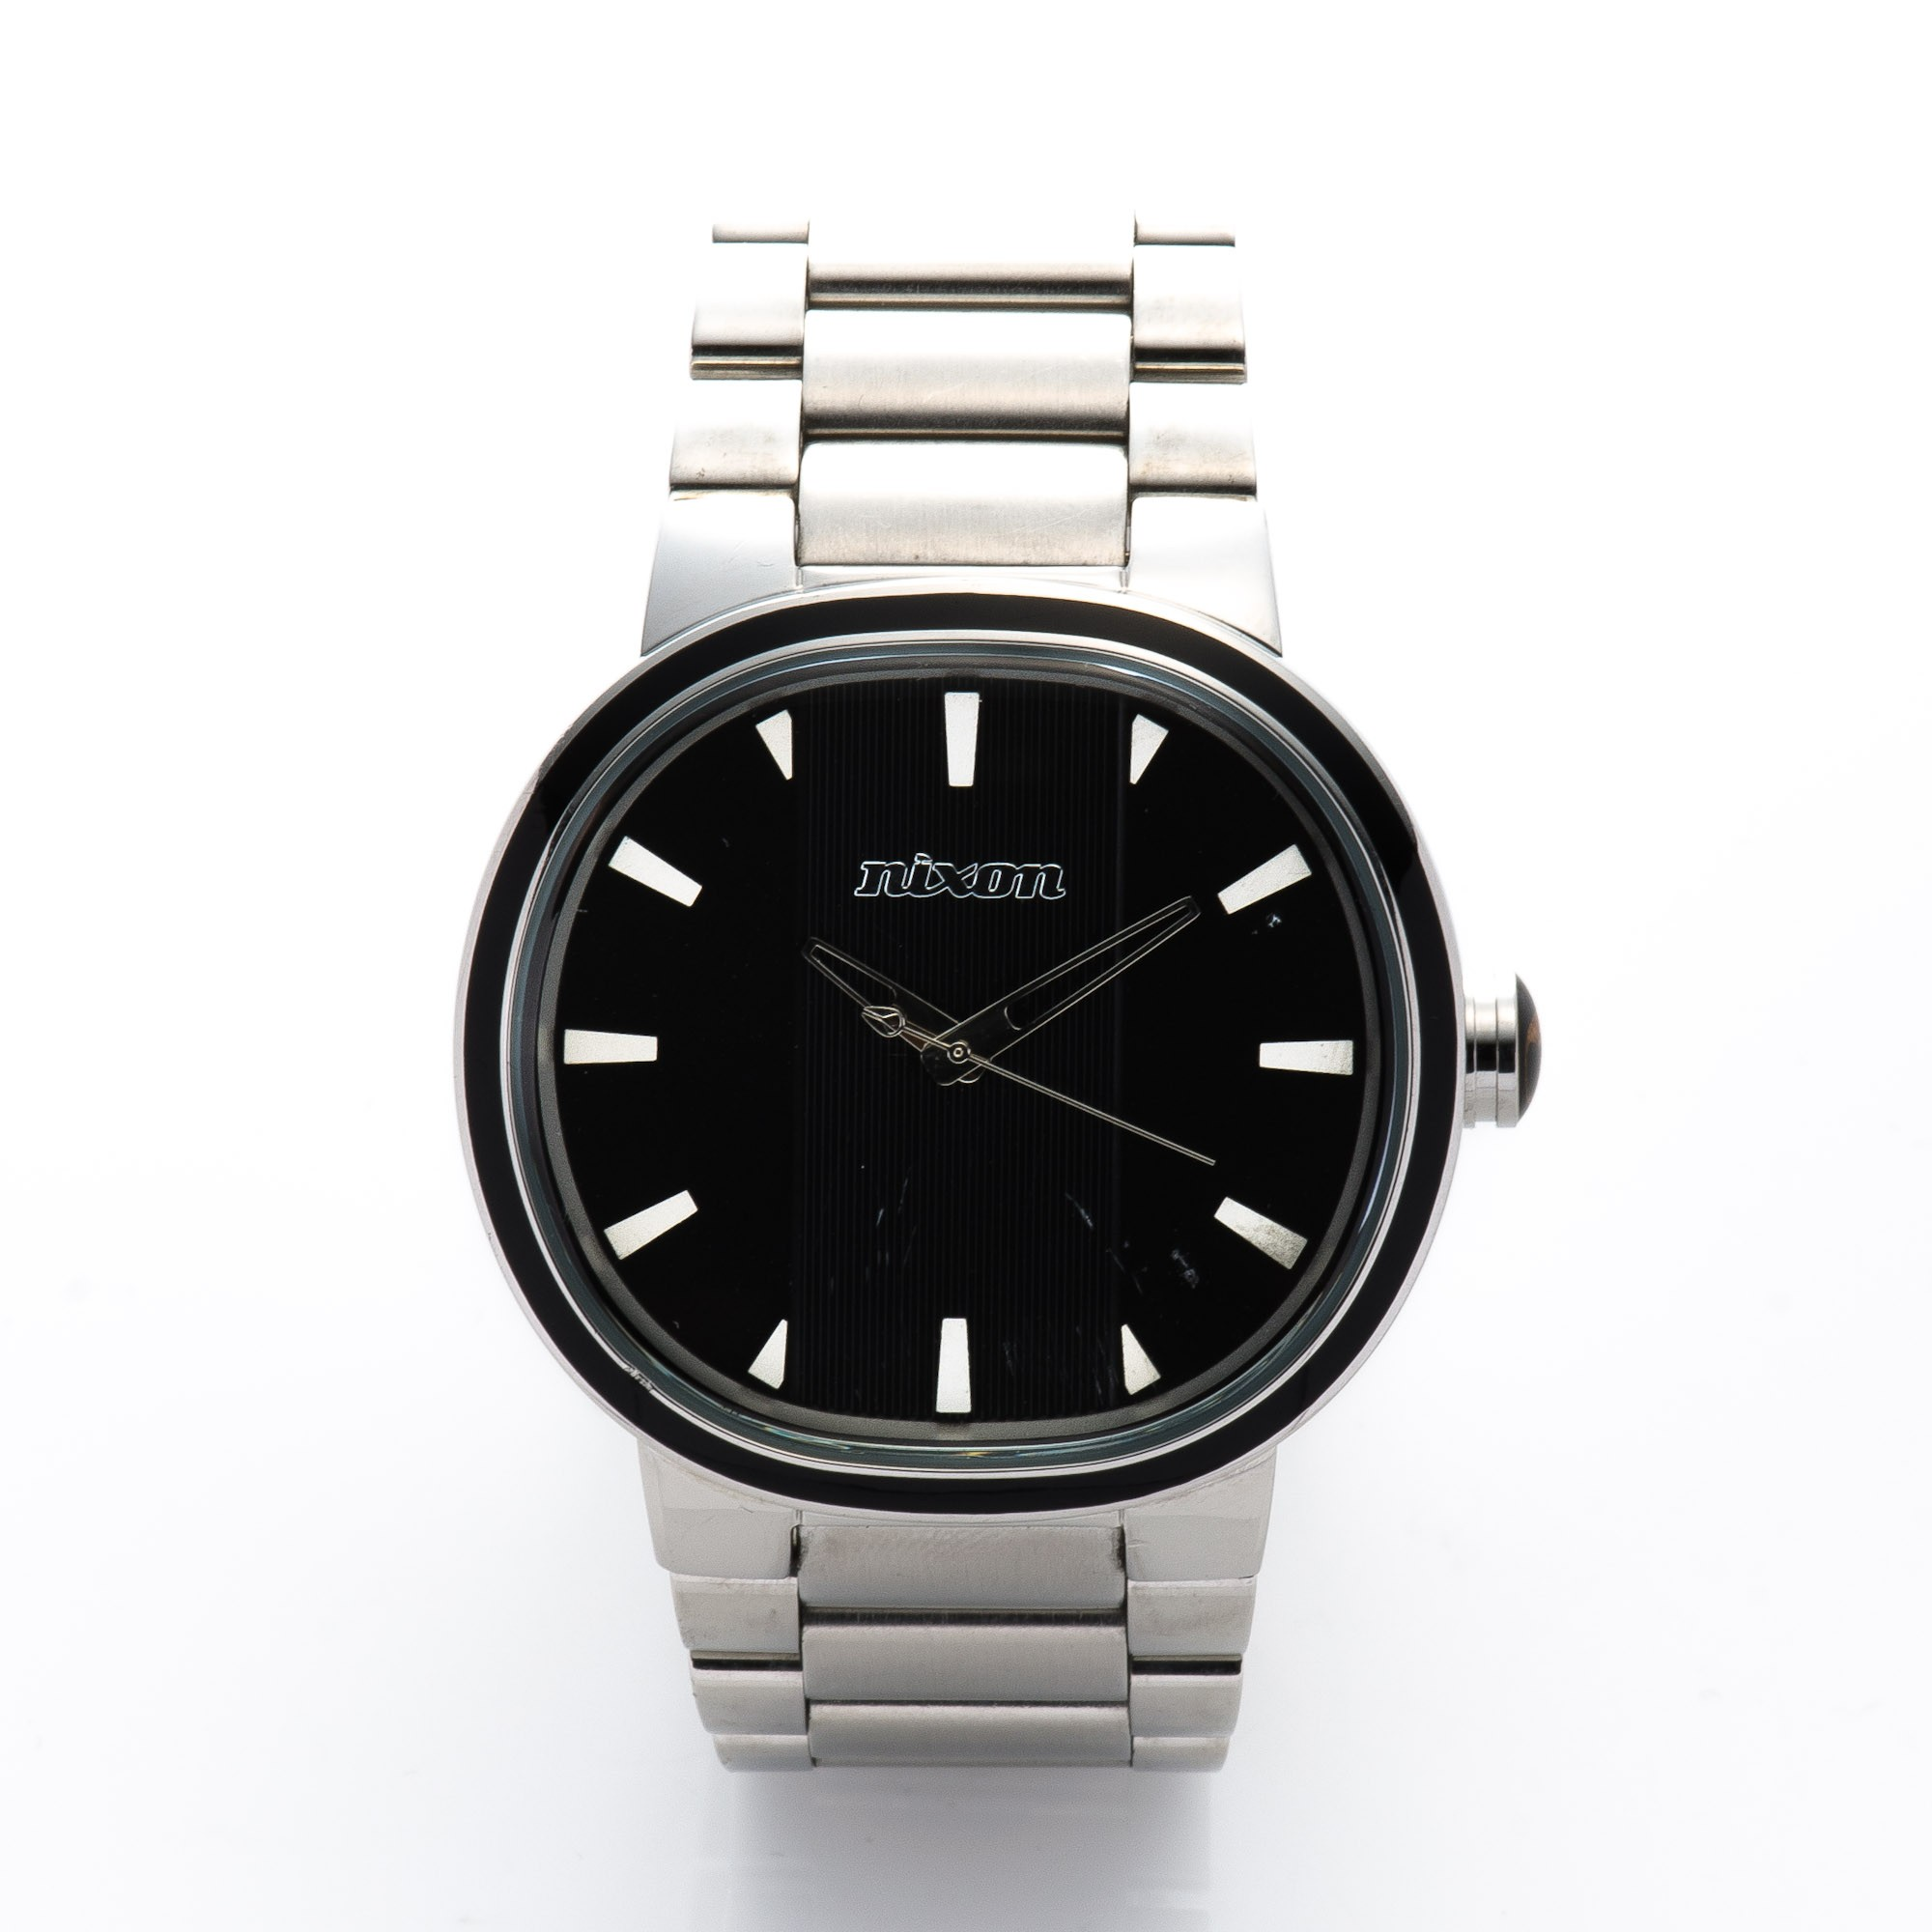 Buy Silver Tone Stainless Steel Nixon Watch At Lxr Amp Co